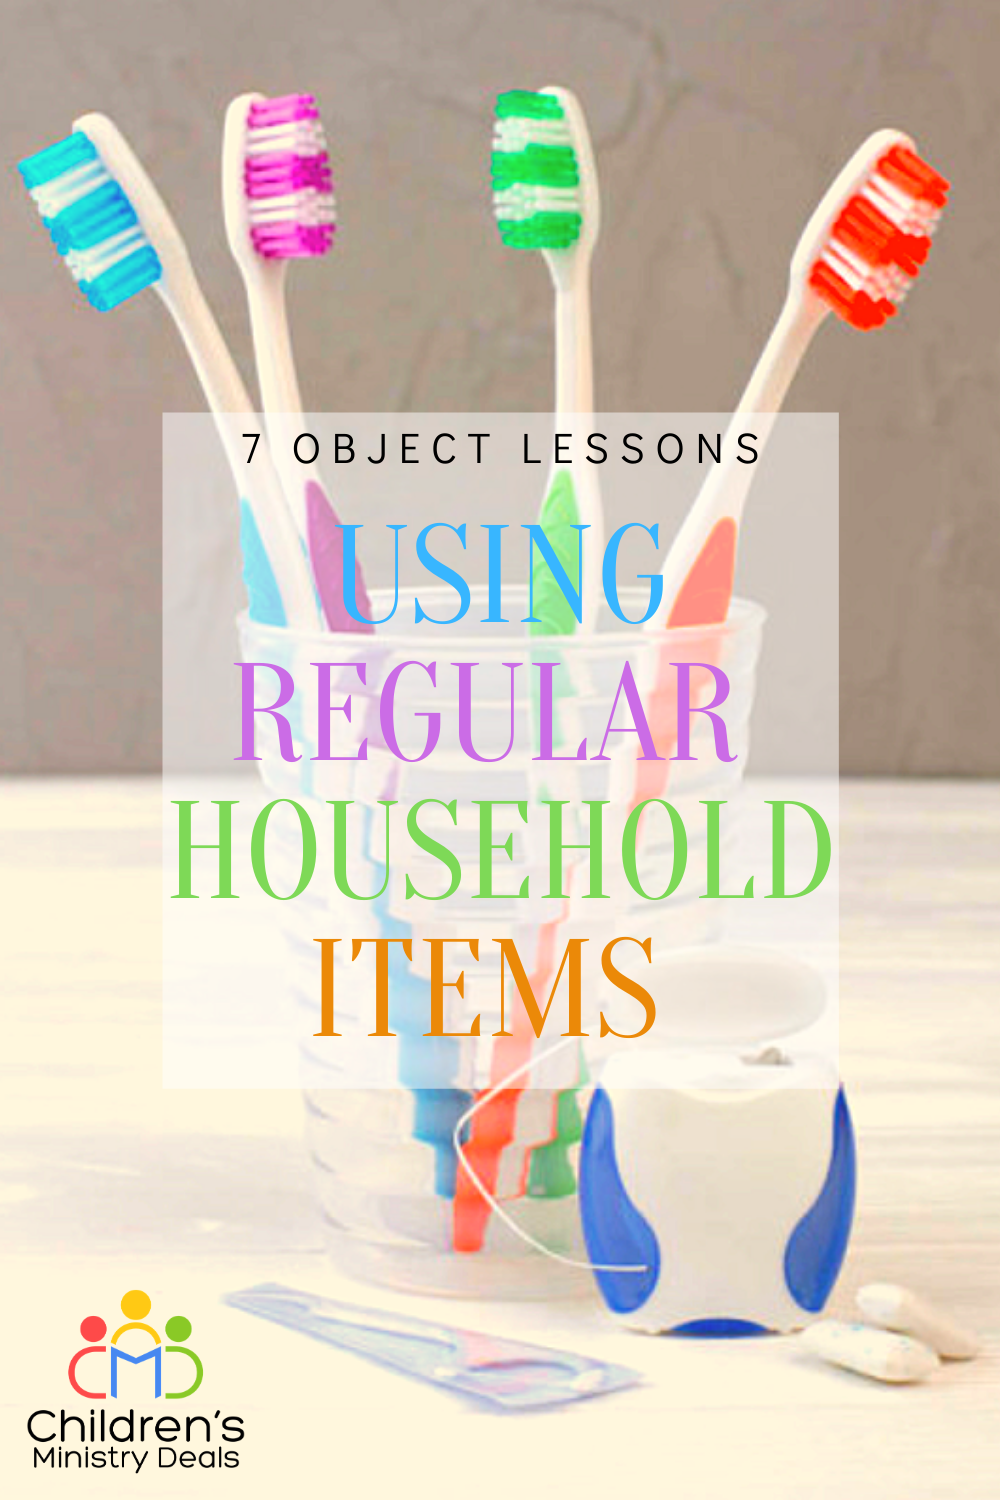 7 Object Lessons on Prayer Using Things Around Your House